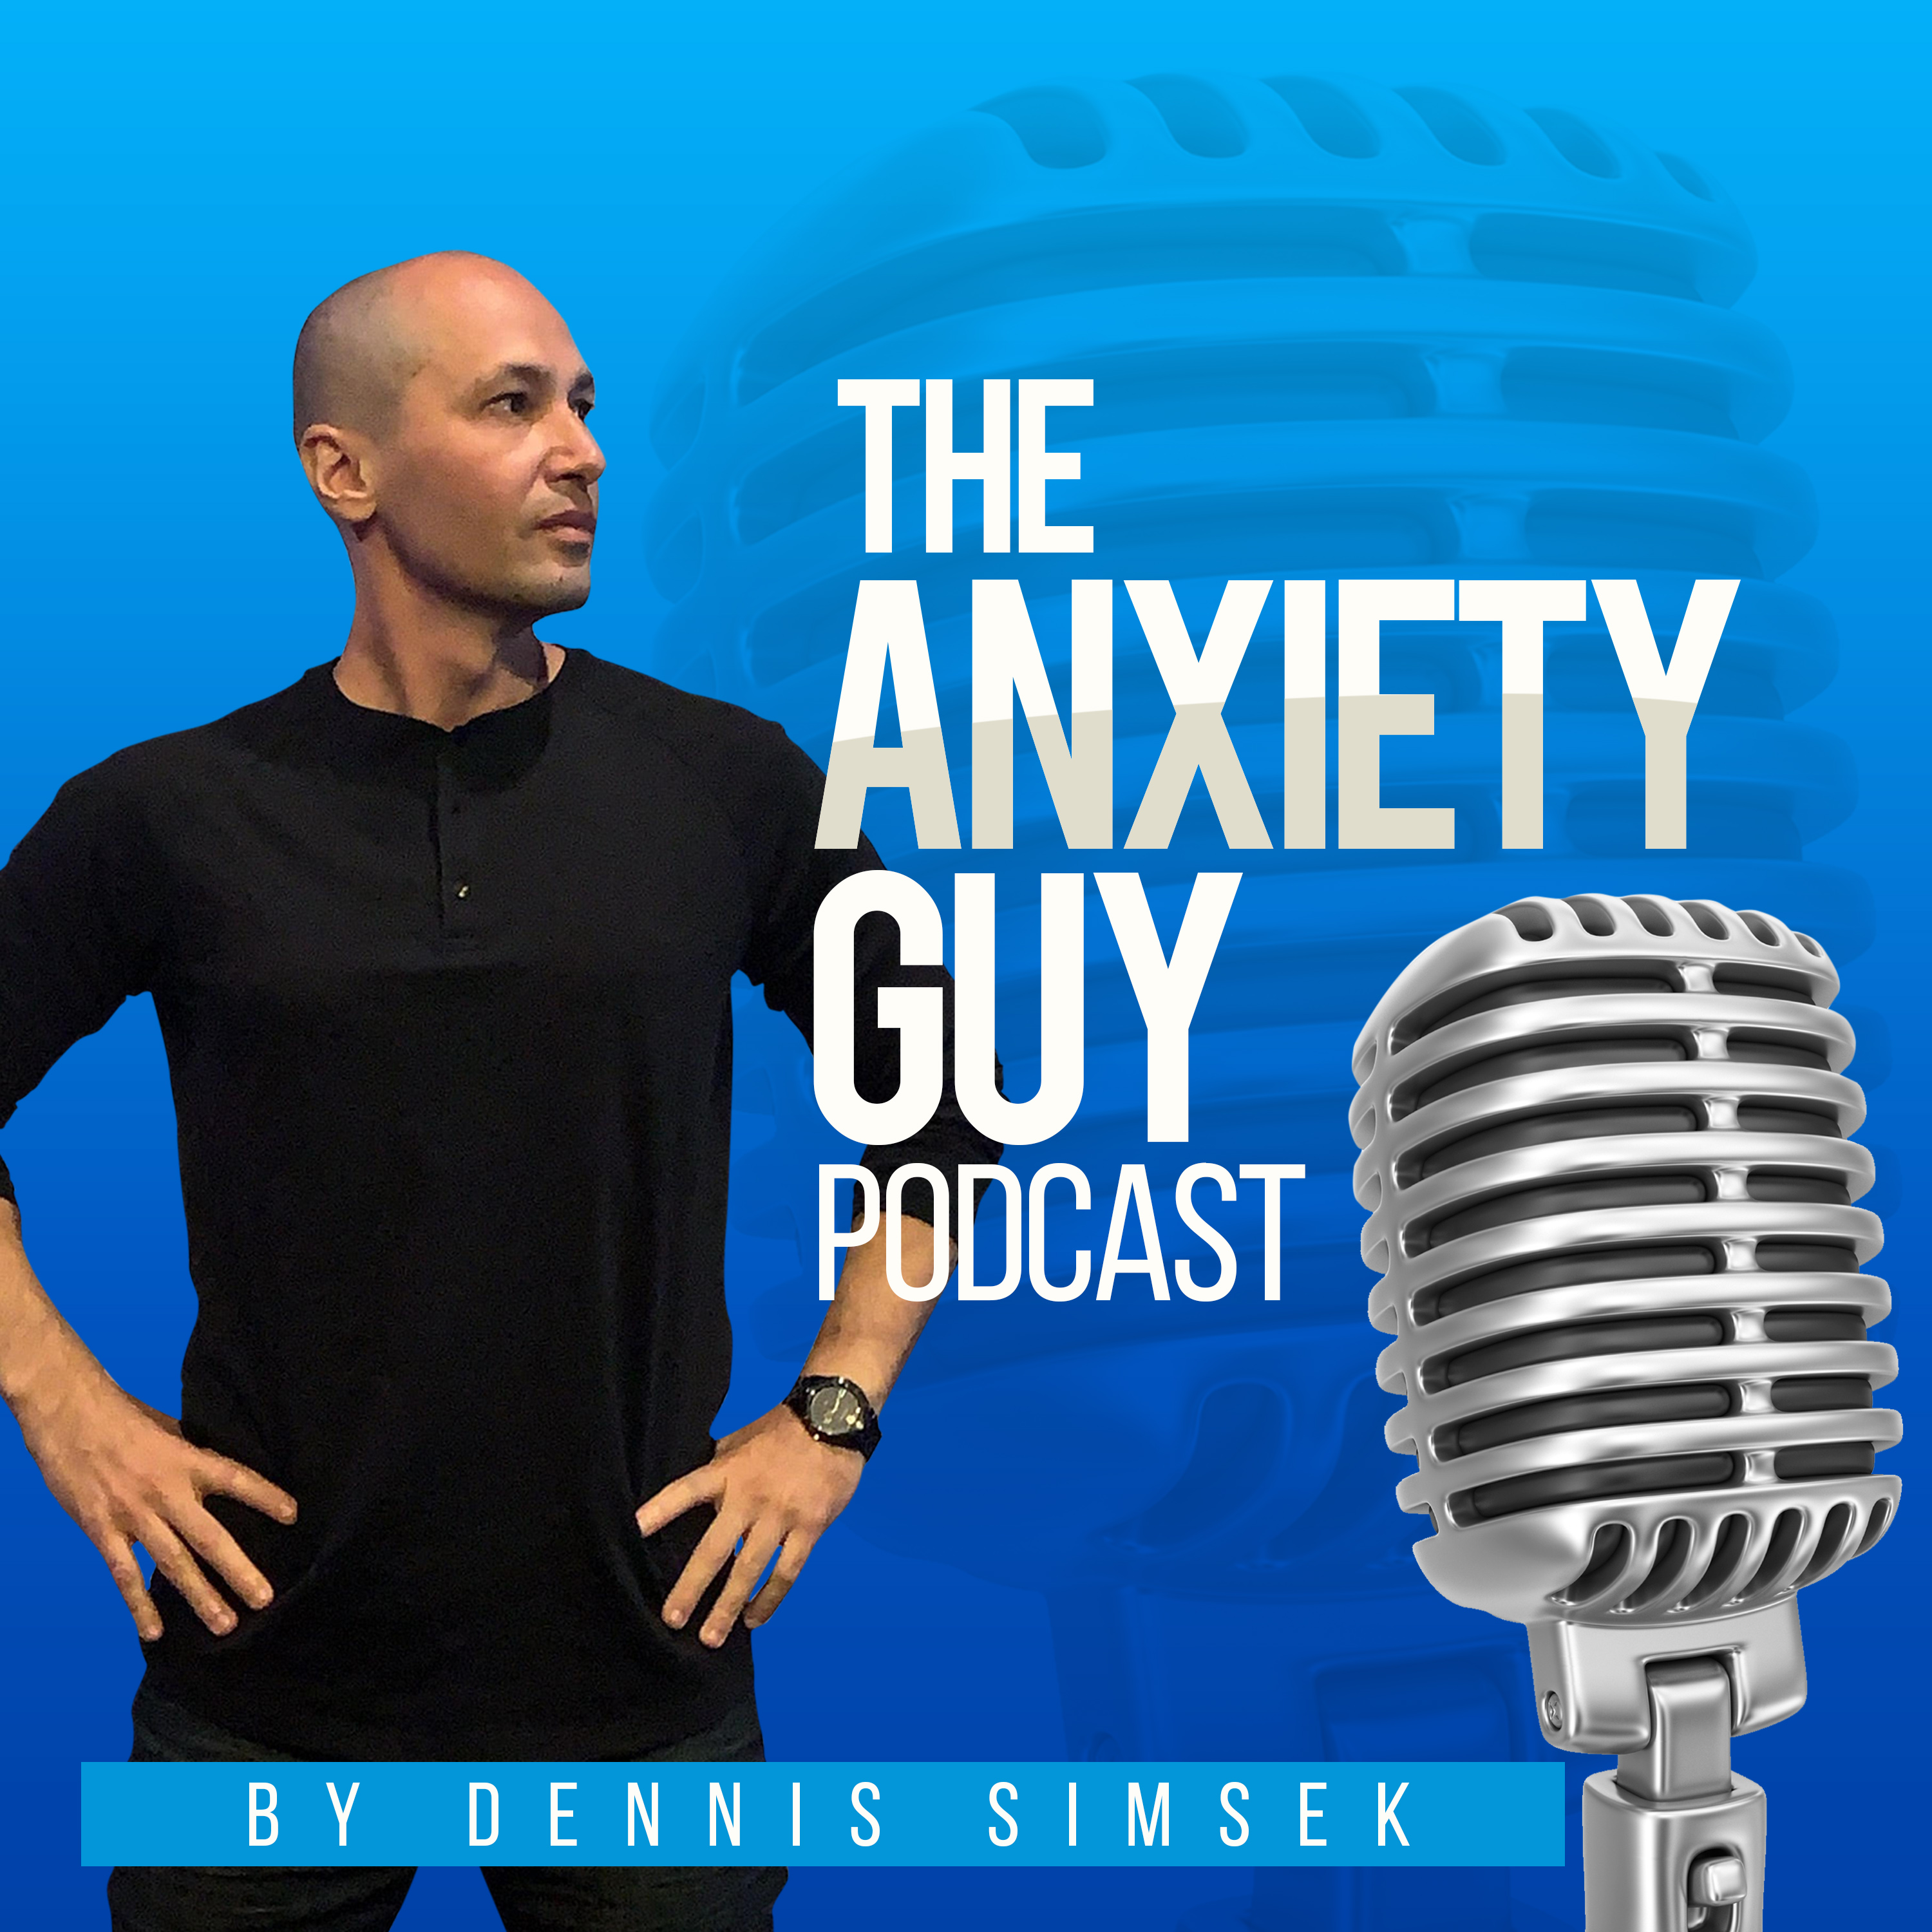 TAGP 303: 3 Simple Techniques To Halt Anxiety In The Moment